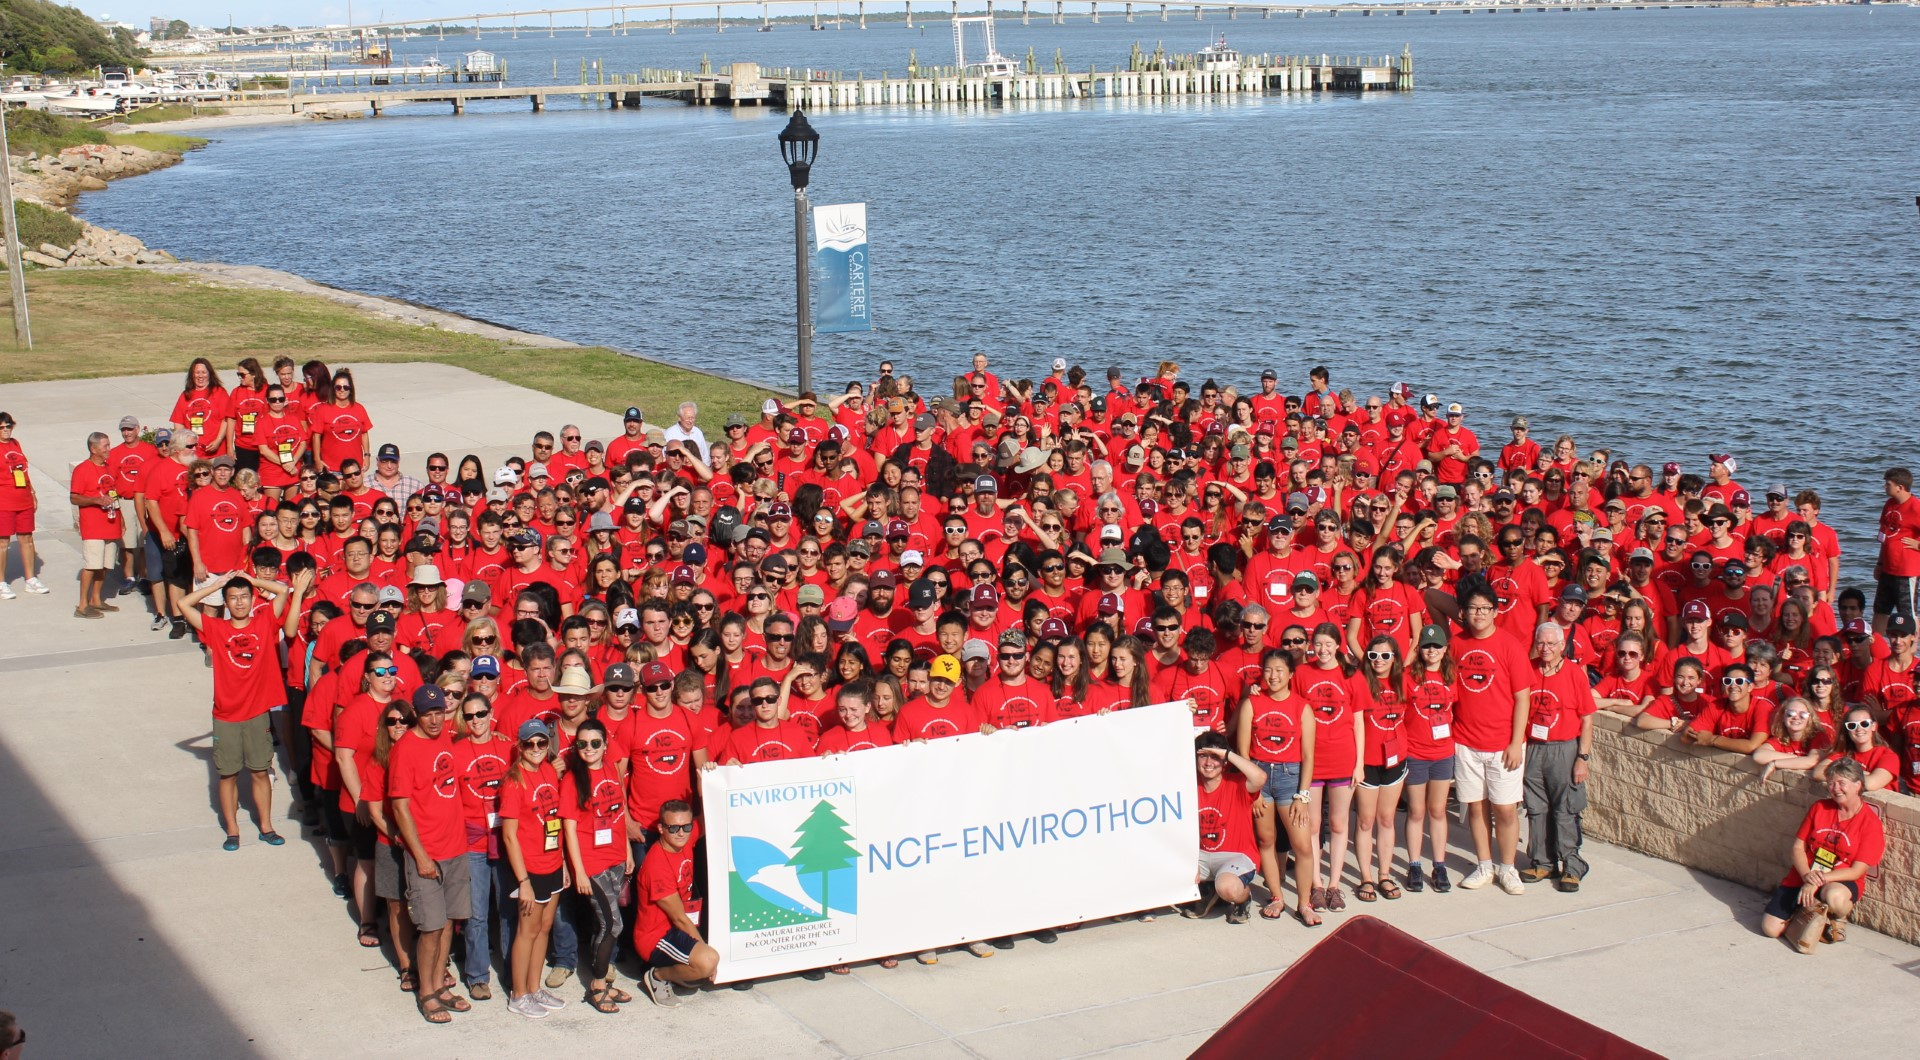 2019 NCF-Envirothon-Group